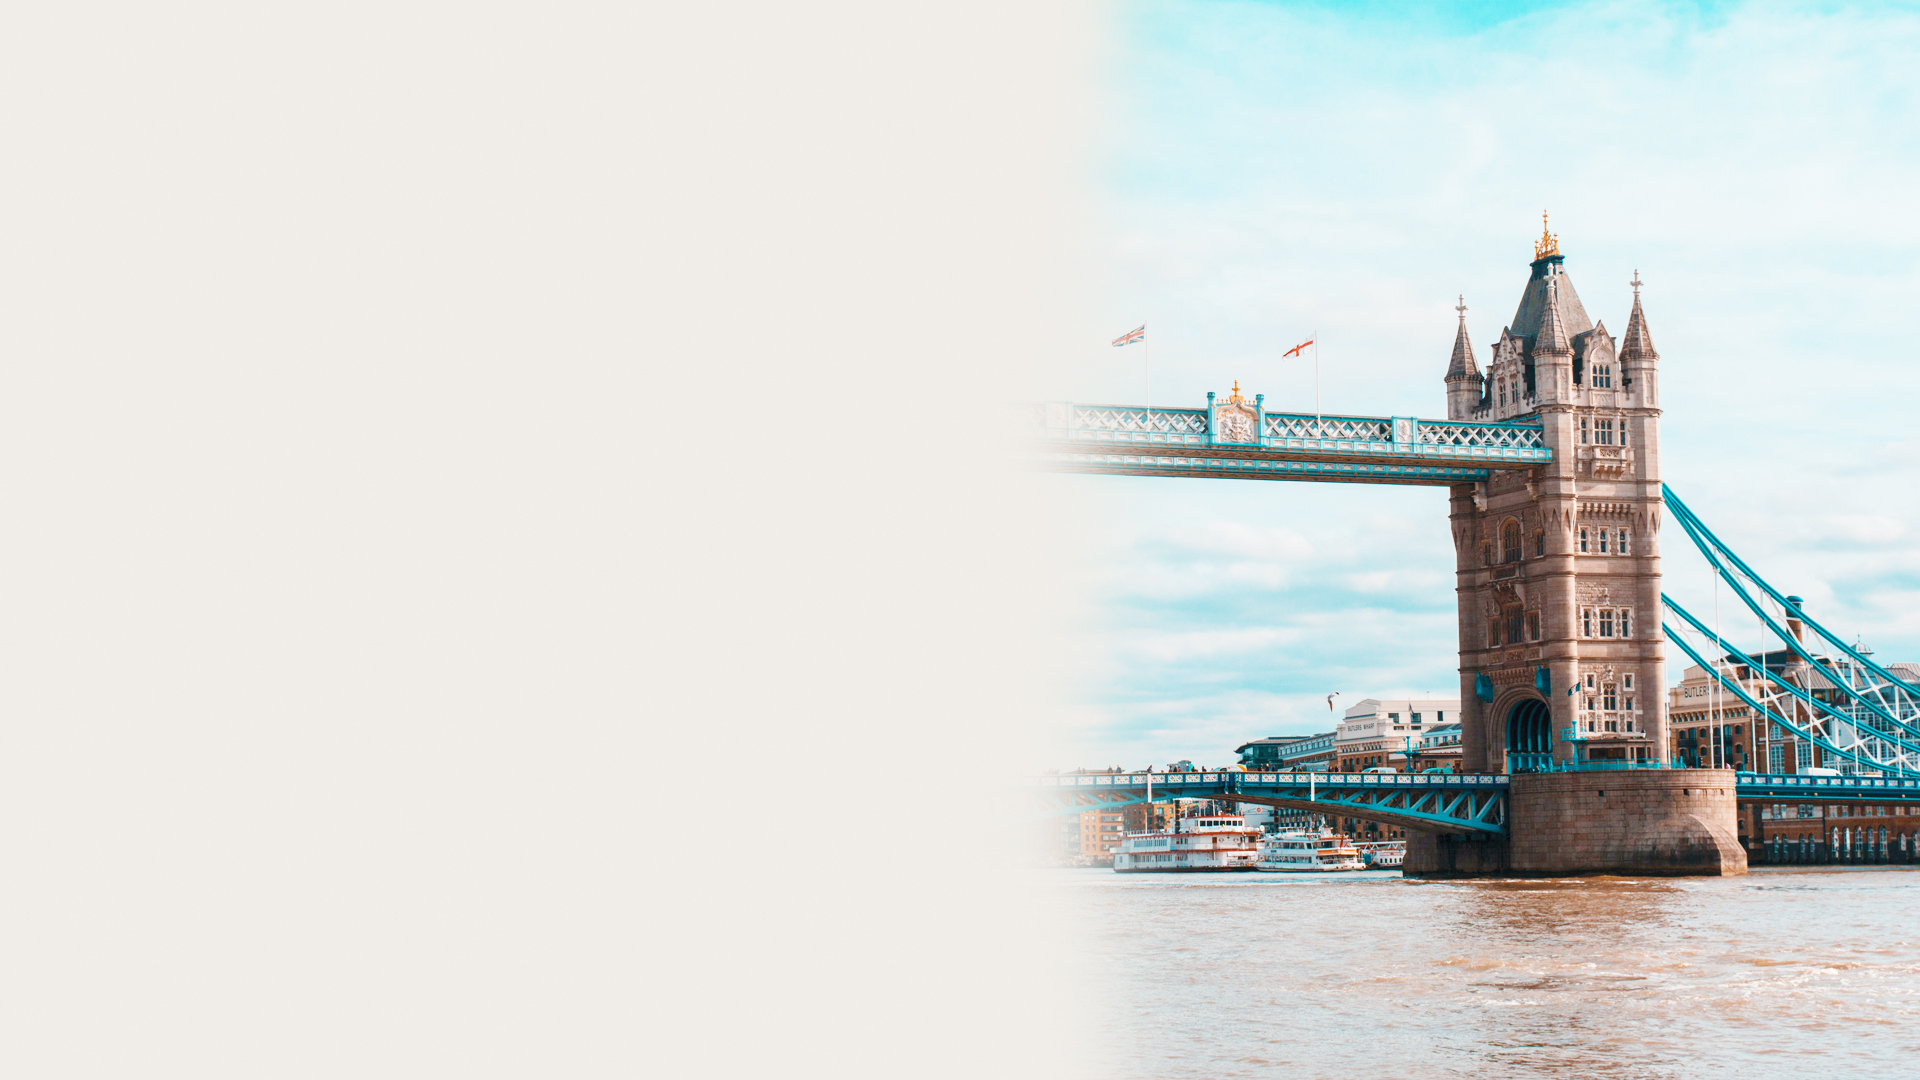 Roberts & Denny's London Removals and Storage Brixton